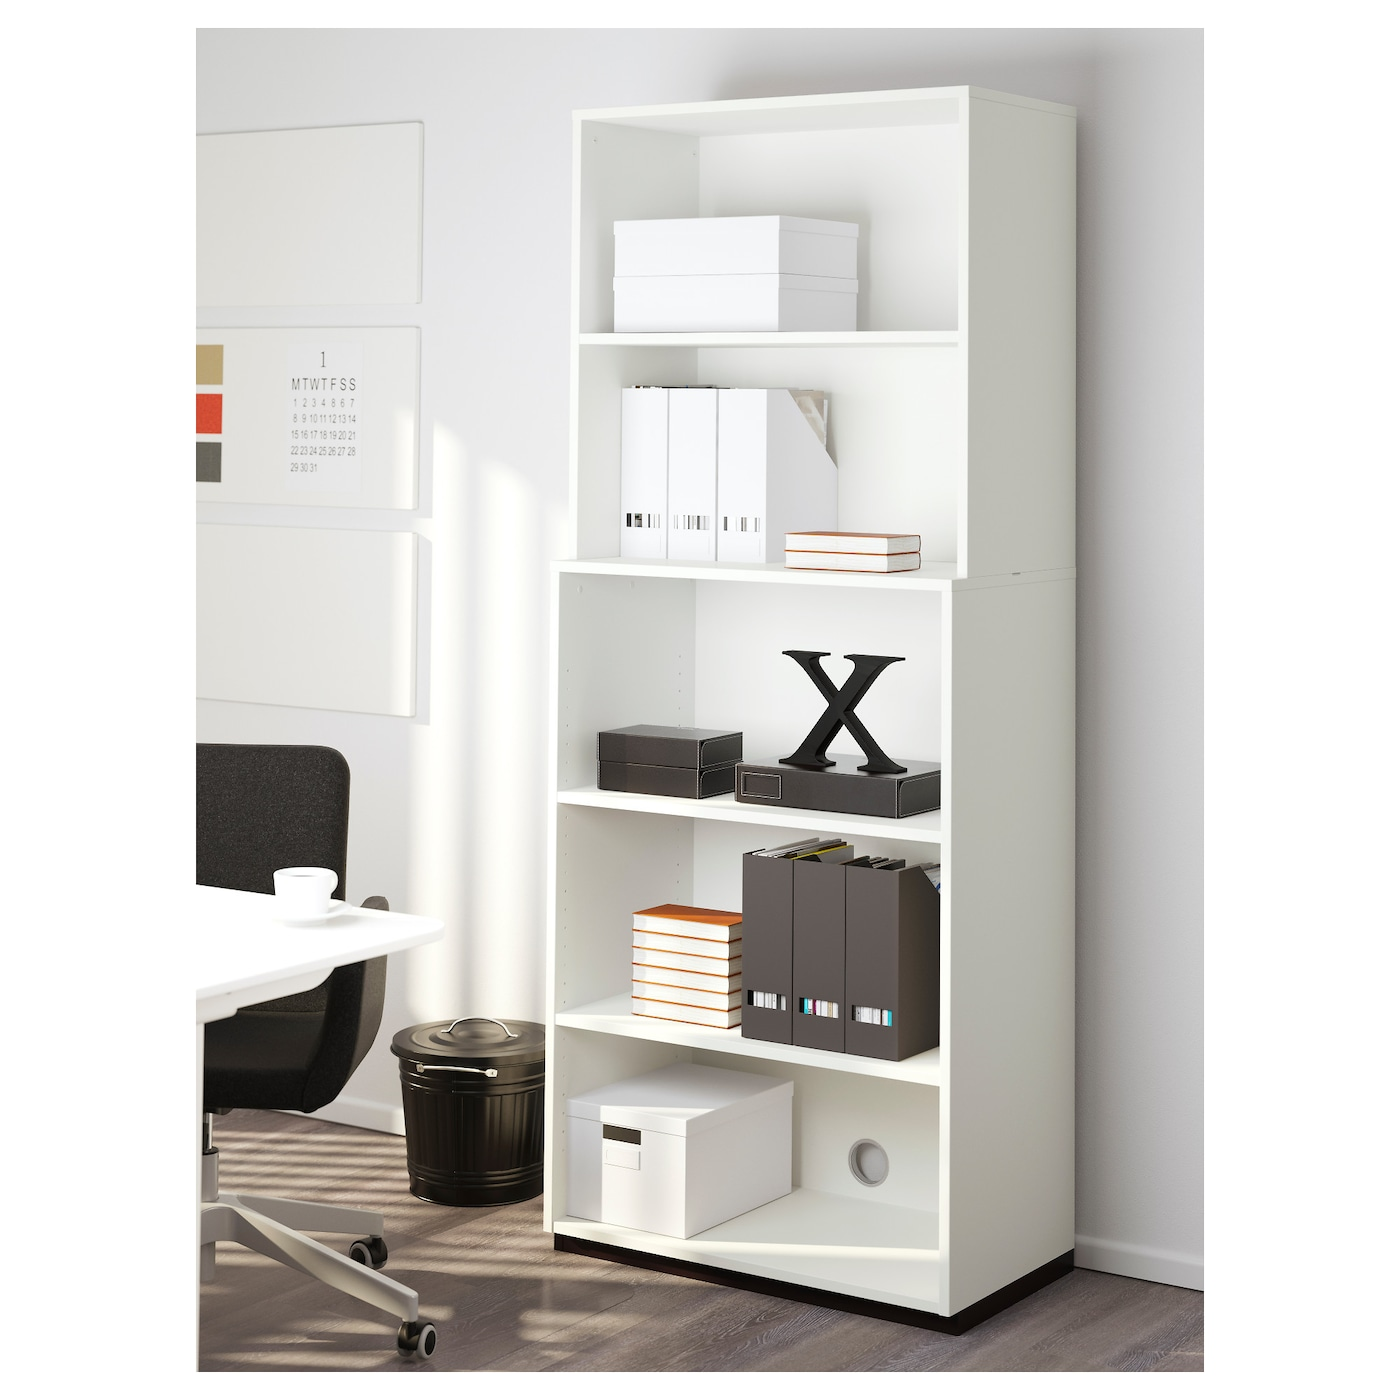 galant open storage combination white 80x200 cm ikea. Black Bedroom Furniture Sets. Home Design Ideas